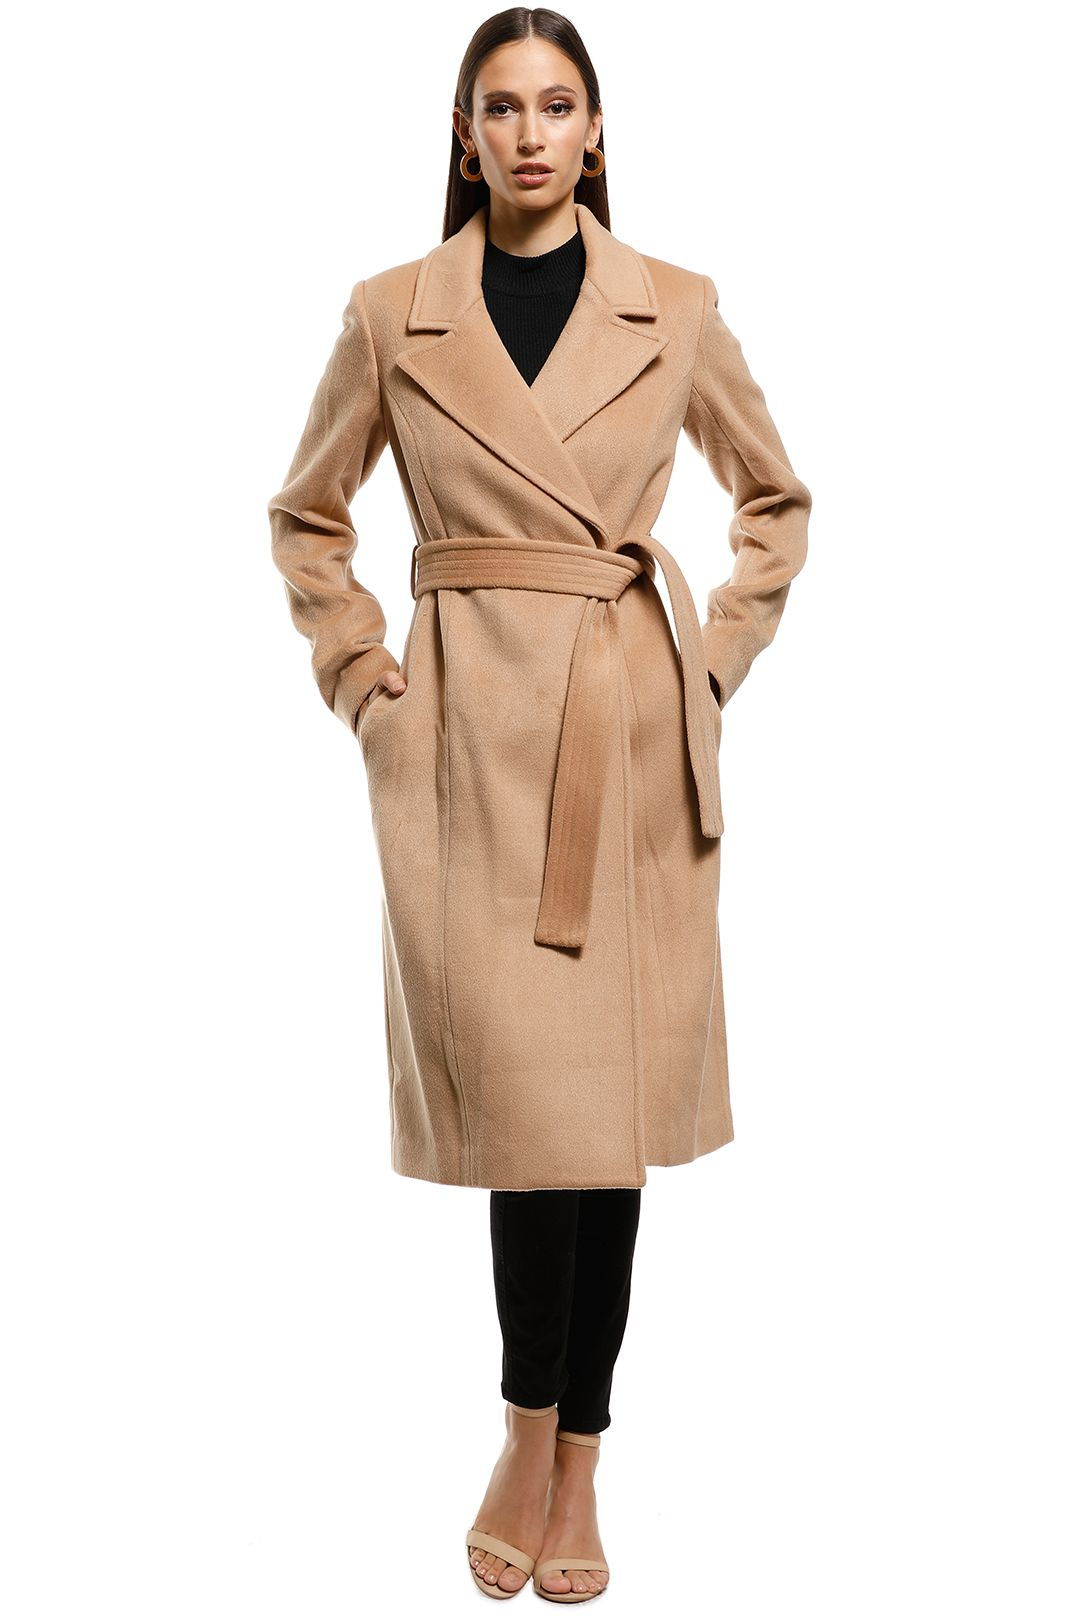 Paris Wool Camel Coat by Friend of Audrey for Rent | GlamCorner